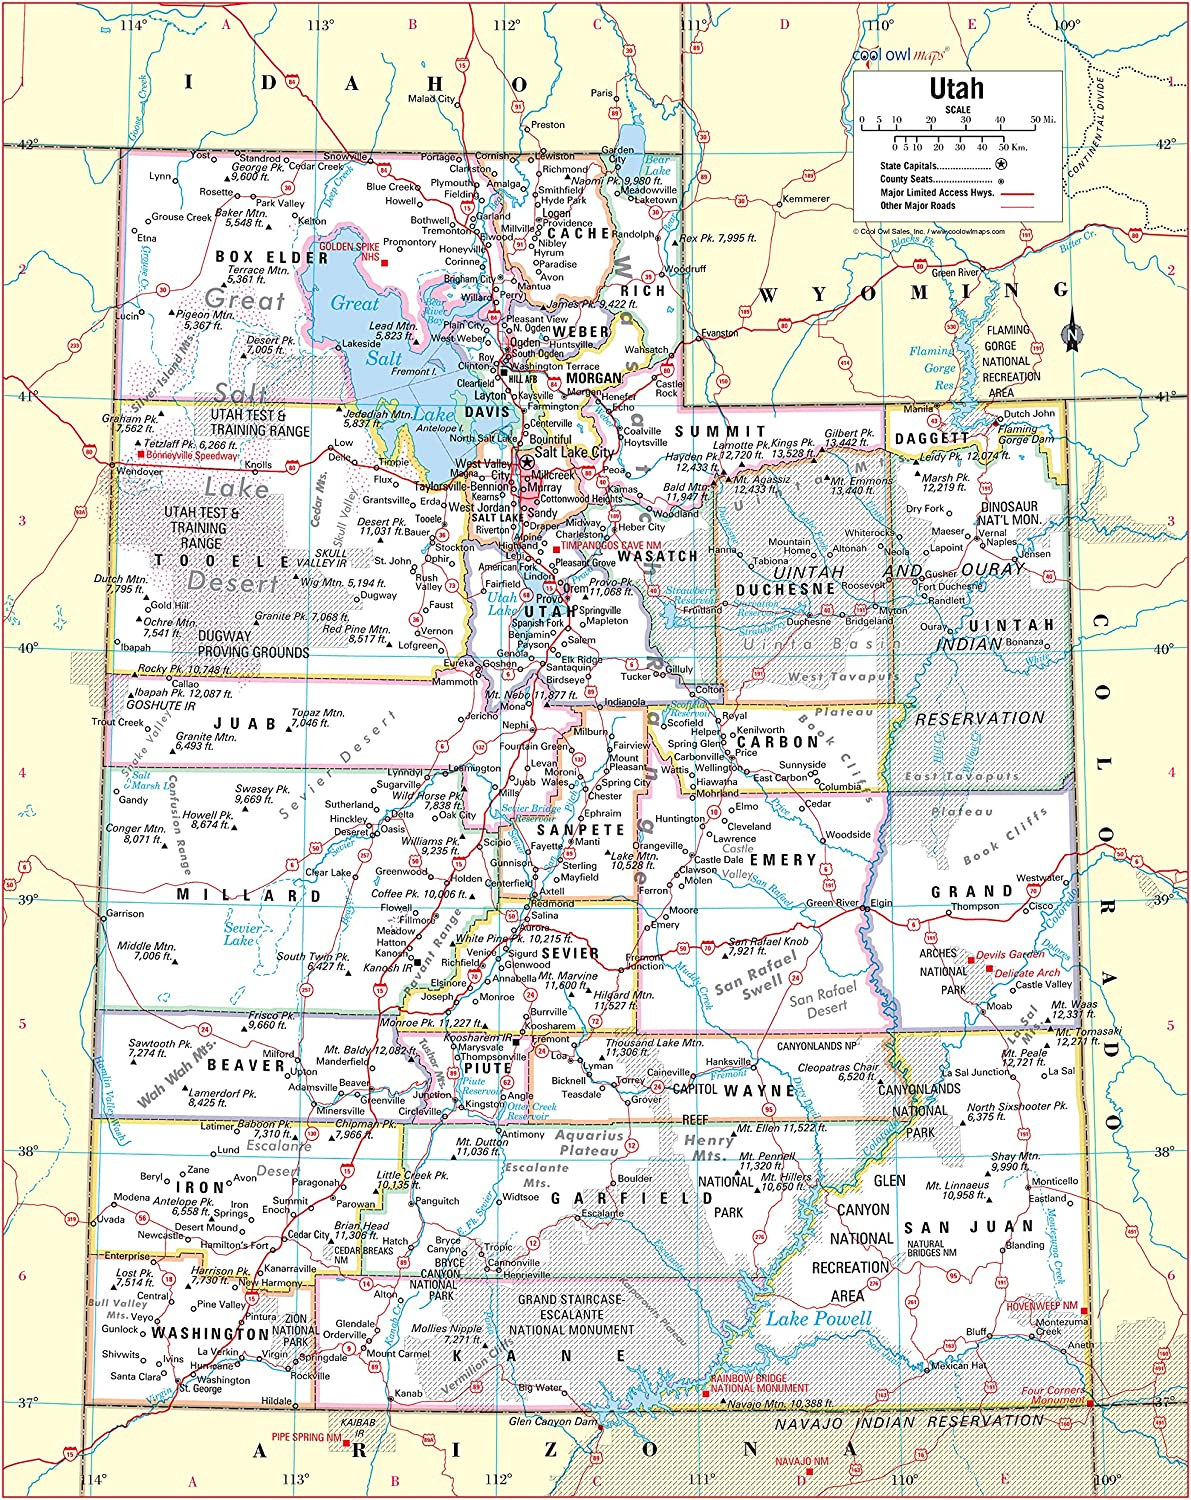 Cool Owl Maps Utah State Wall Map Poster Rolled 24Wx30H Laminated